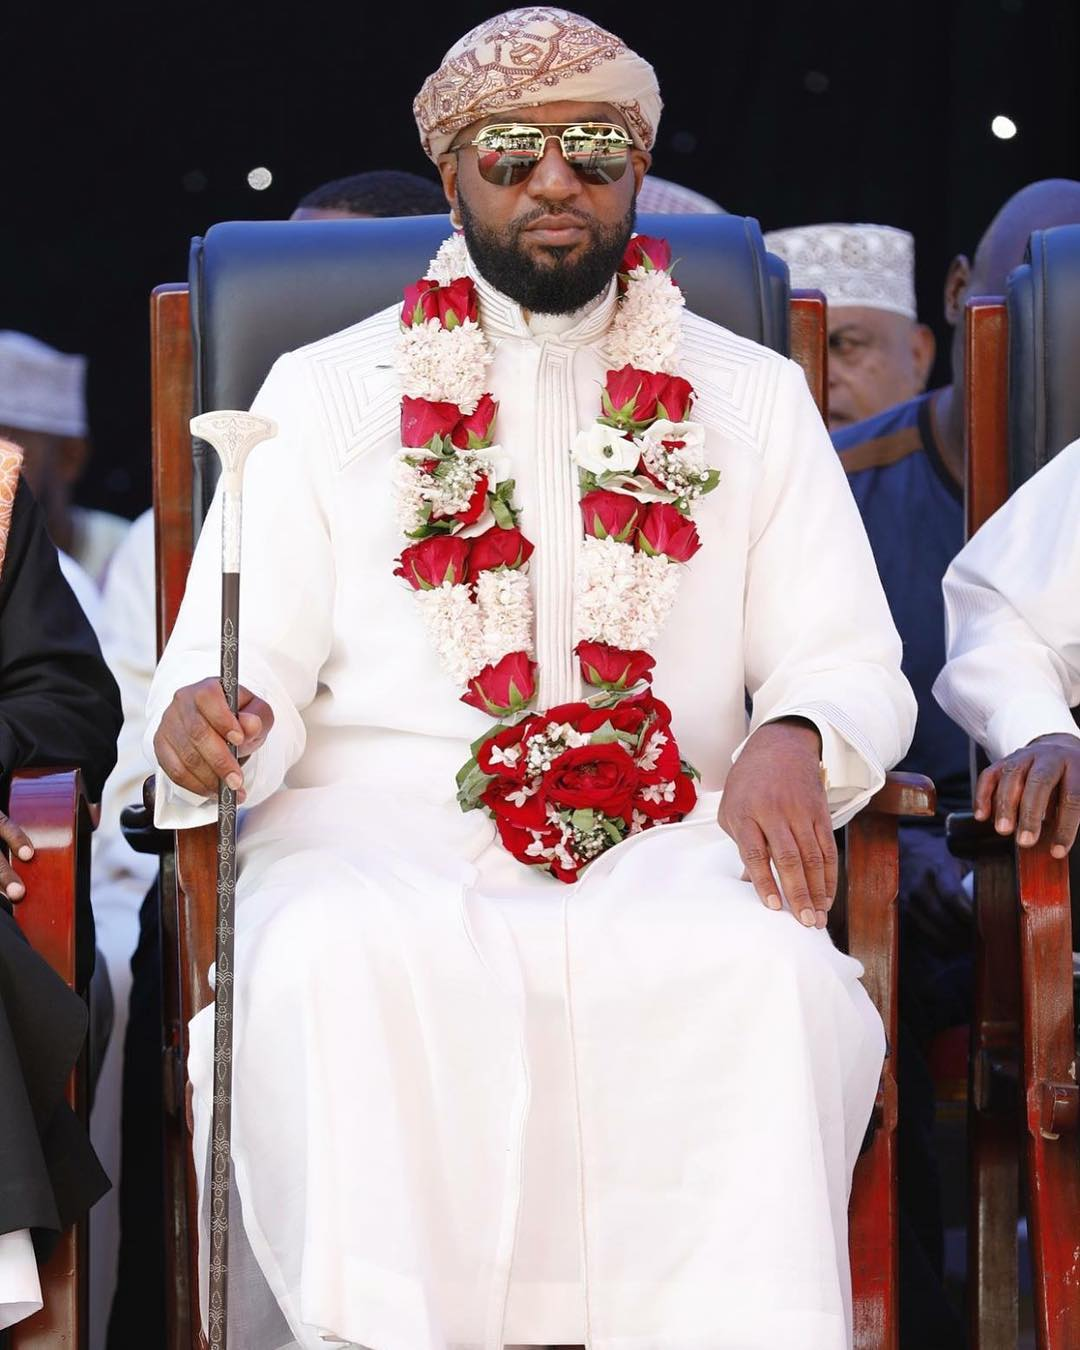 34501586 217585792180695 5799198768729423872 n - Mr steal your girl! Tantalizing photos of Governor Joho